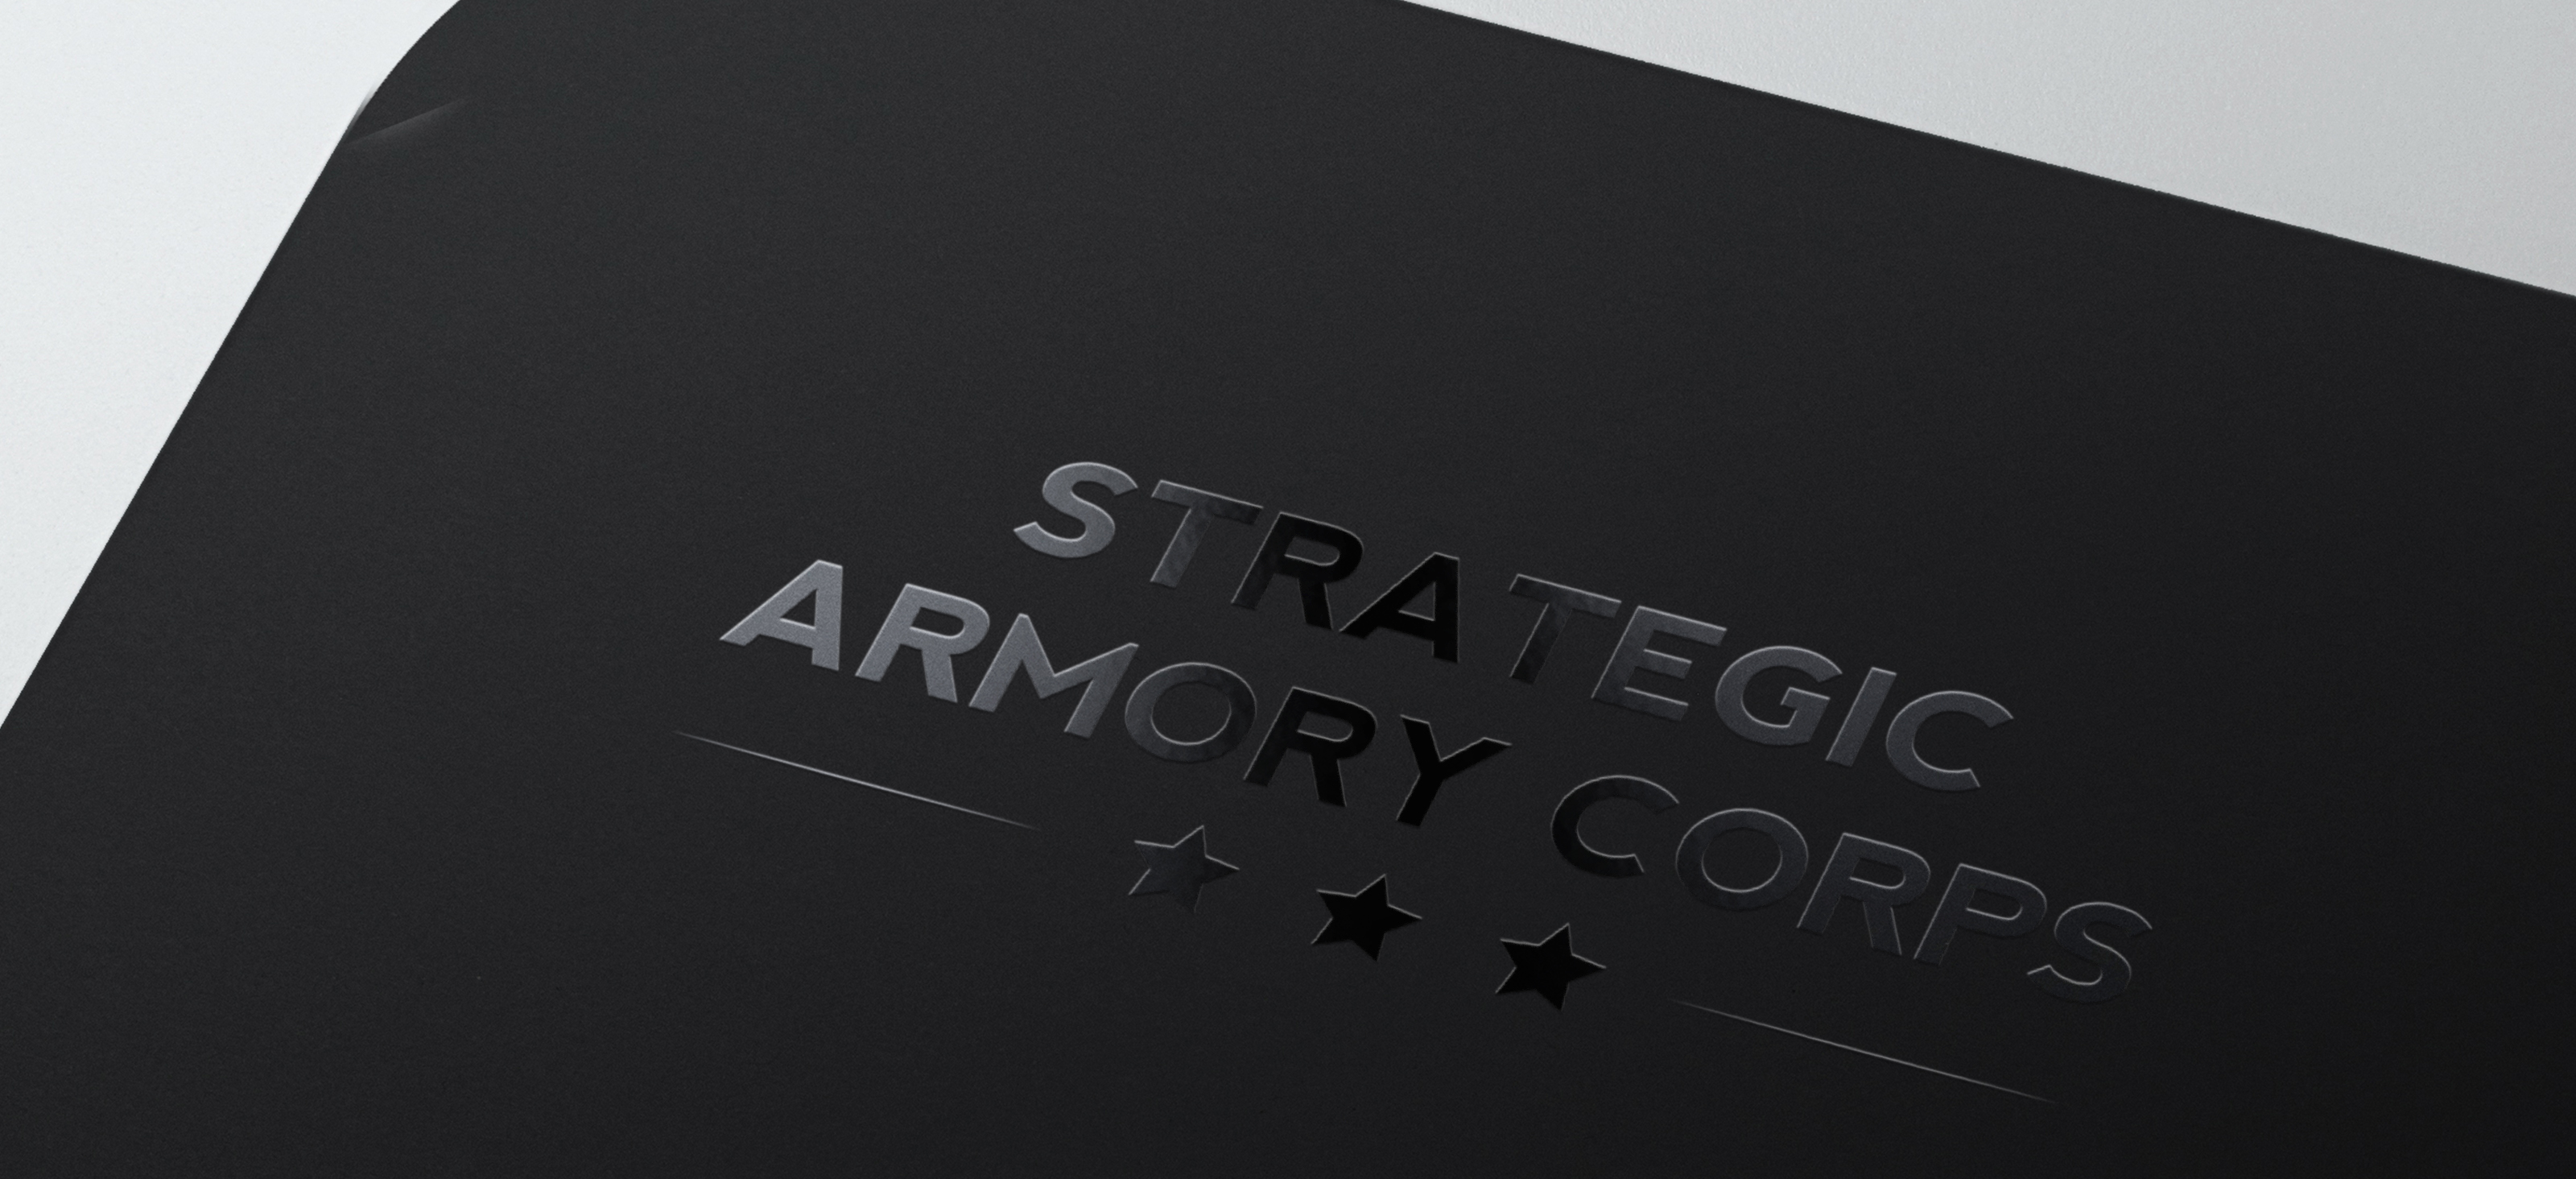 Strategic Armory Corps spot uv